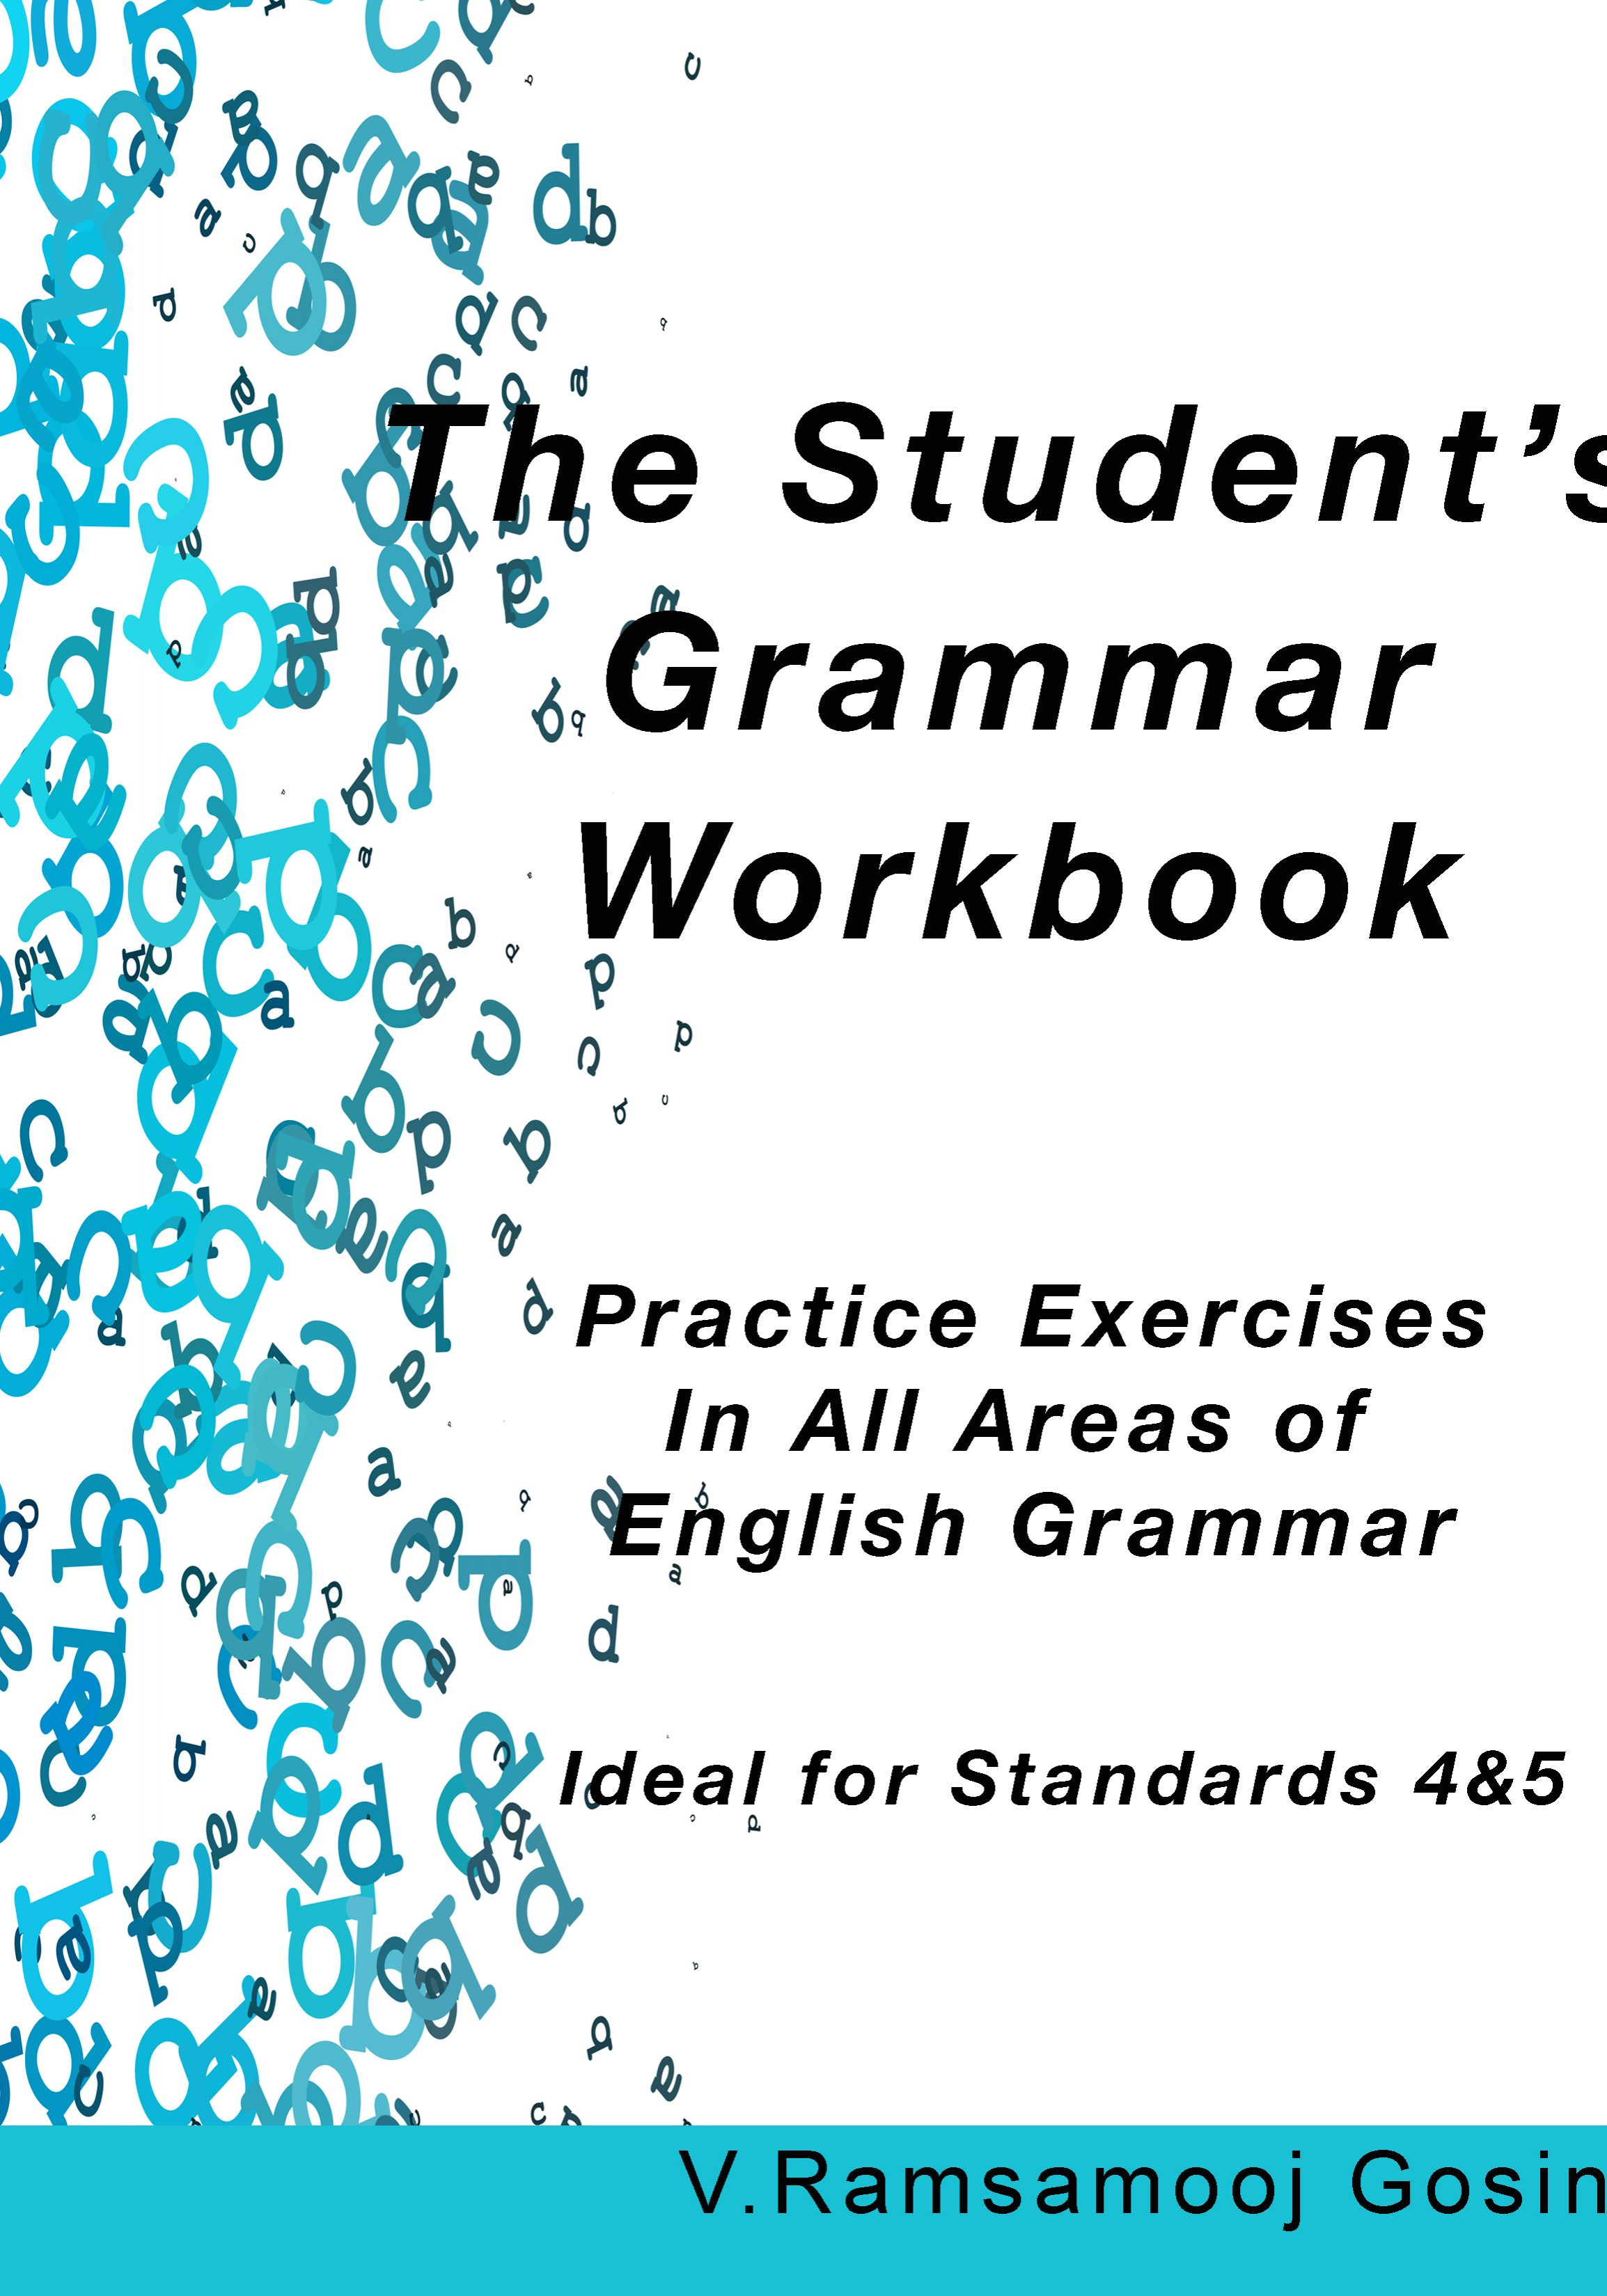 The Student's Grammar Workbook